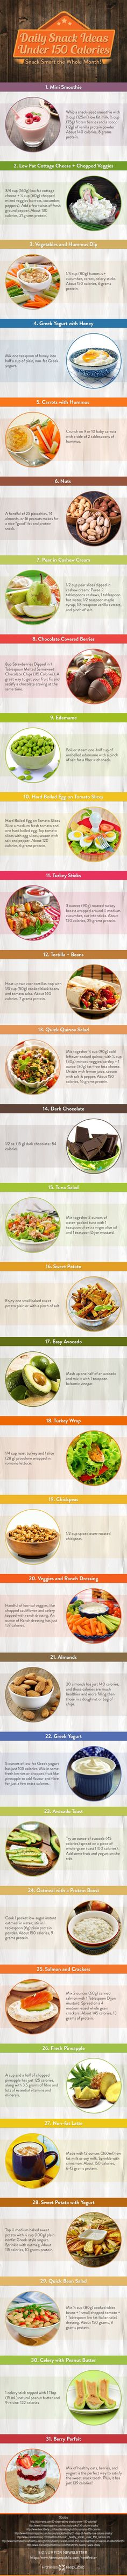 Daily Snack Ideas Under 150 Calories | Fitness Republic